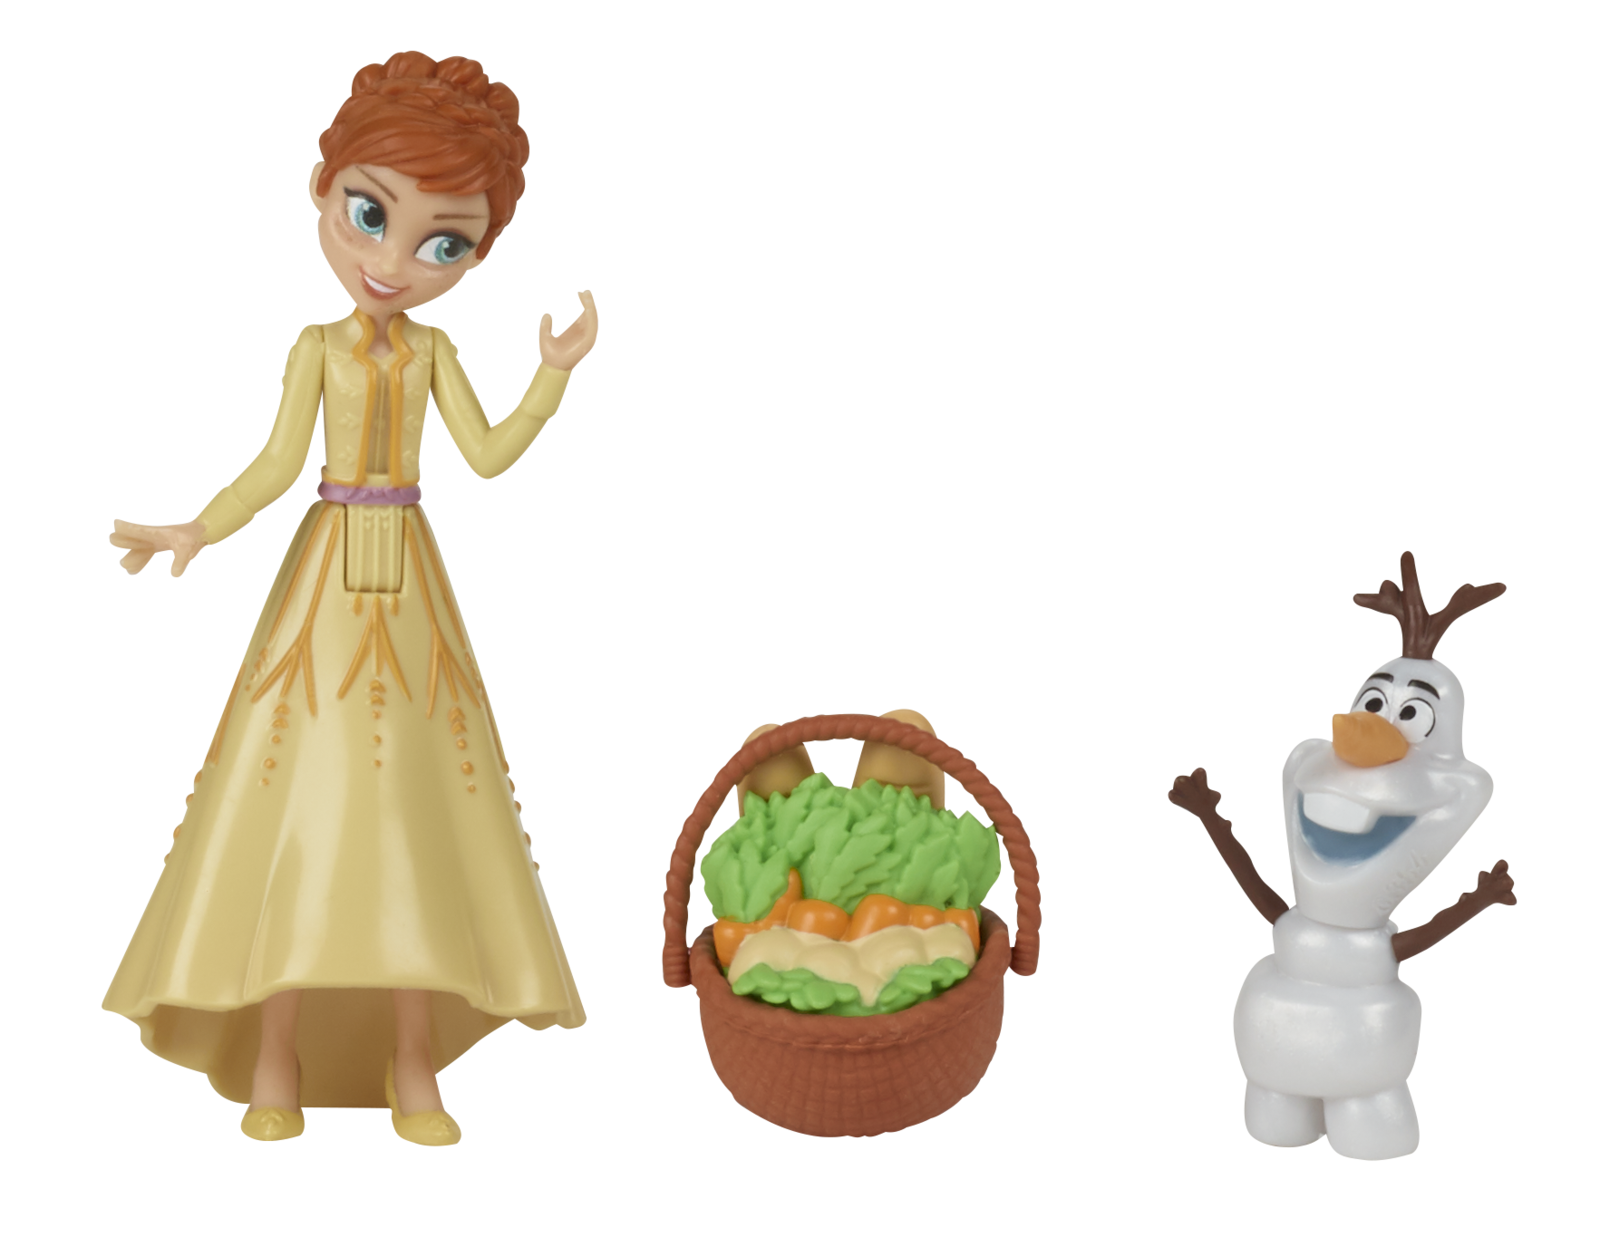 Frozen II: Anna & Olaf - Small Doll Set image